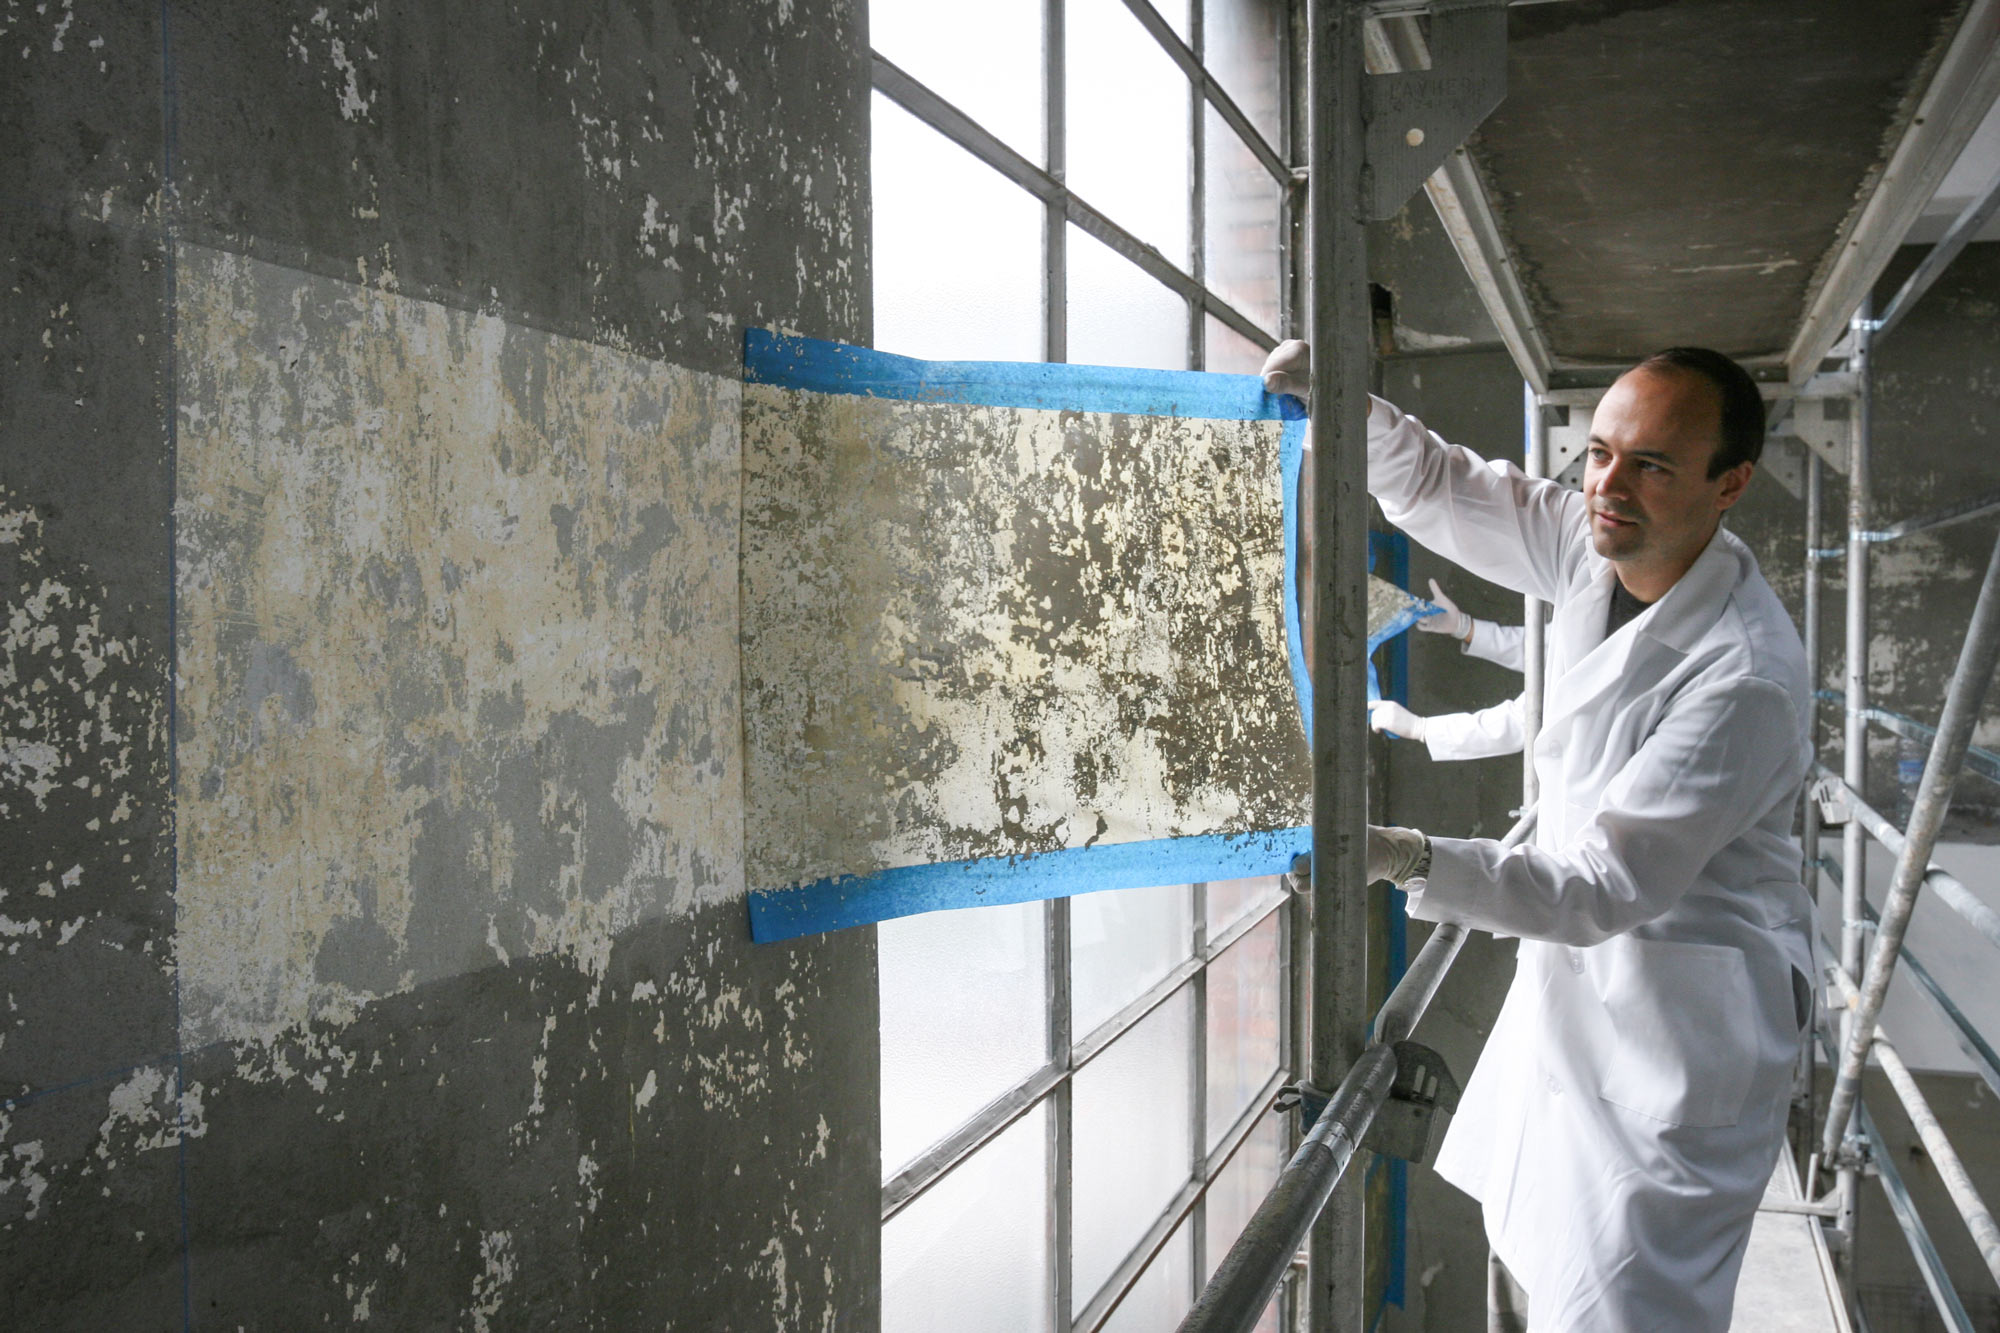 Jorge Otero-Pailos cleaning the wall of the Alumix factory in 2008. (photo courtesy of Patrick Ciccone)